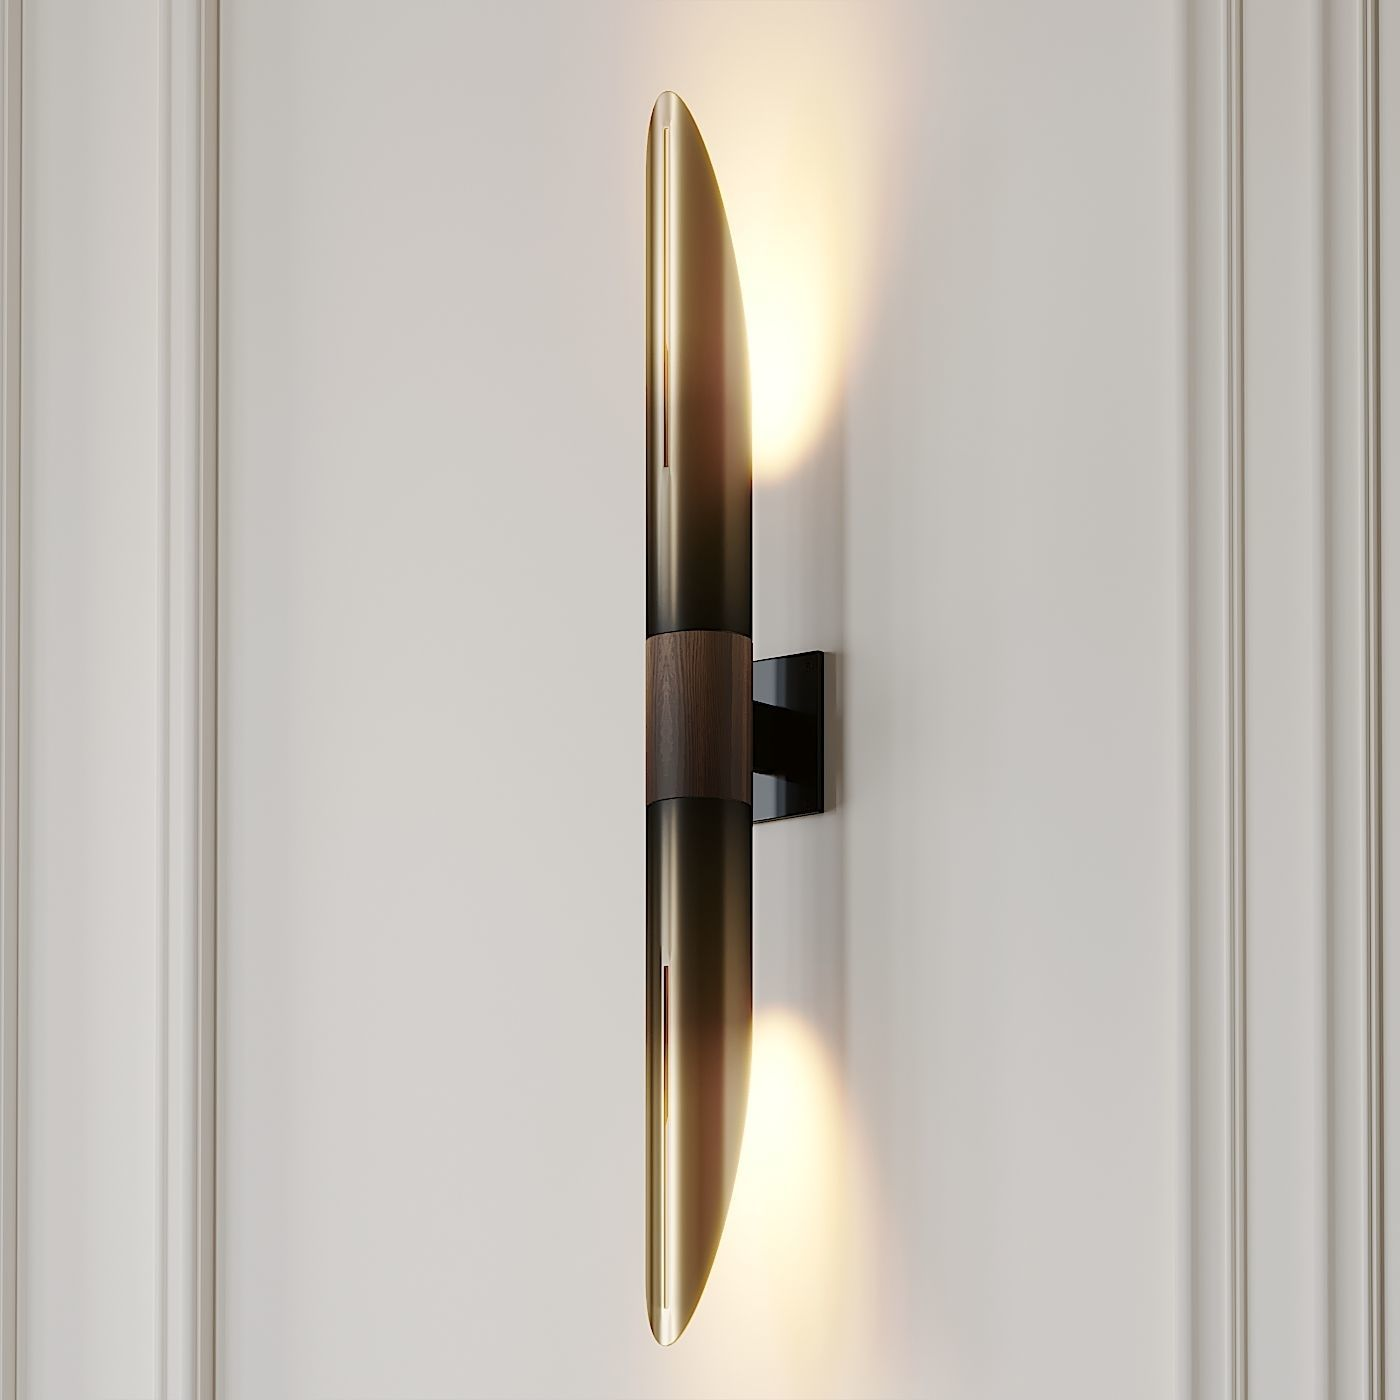 VOYAGER 33 inch Wall SCONCE by Allied Maker